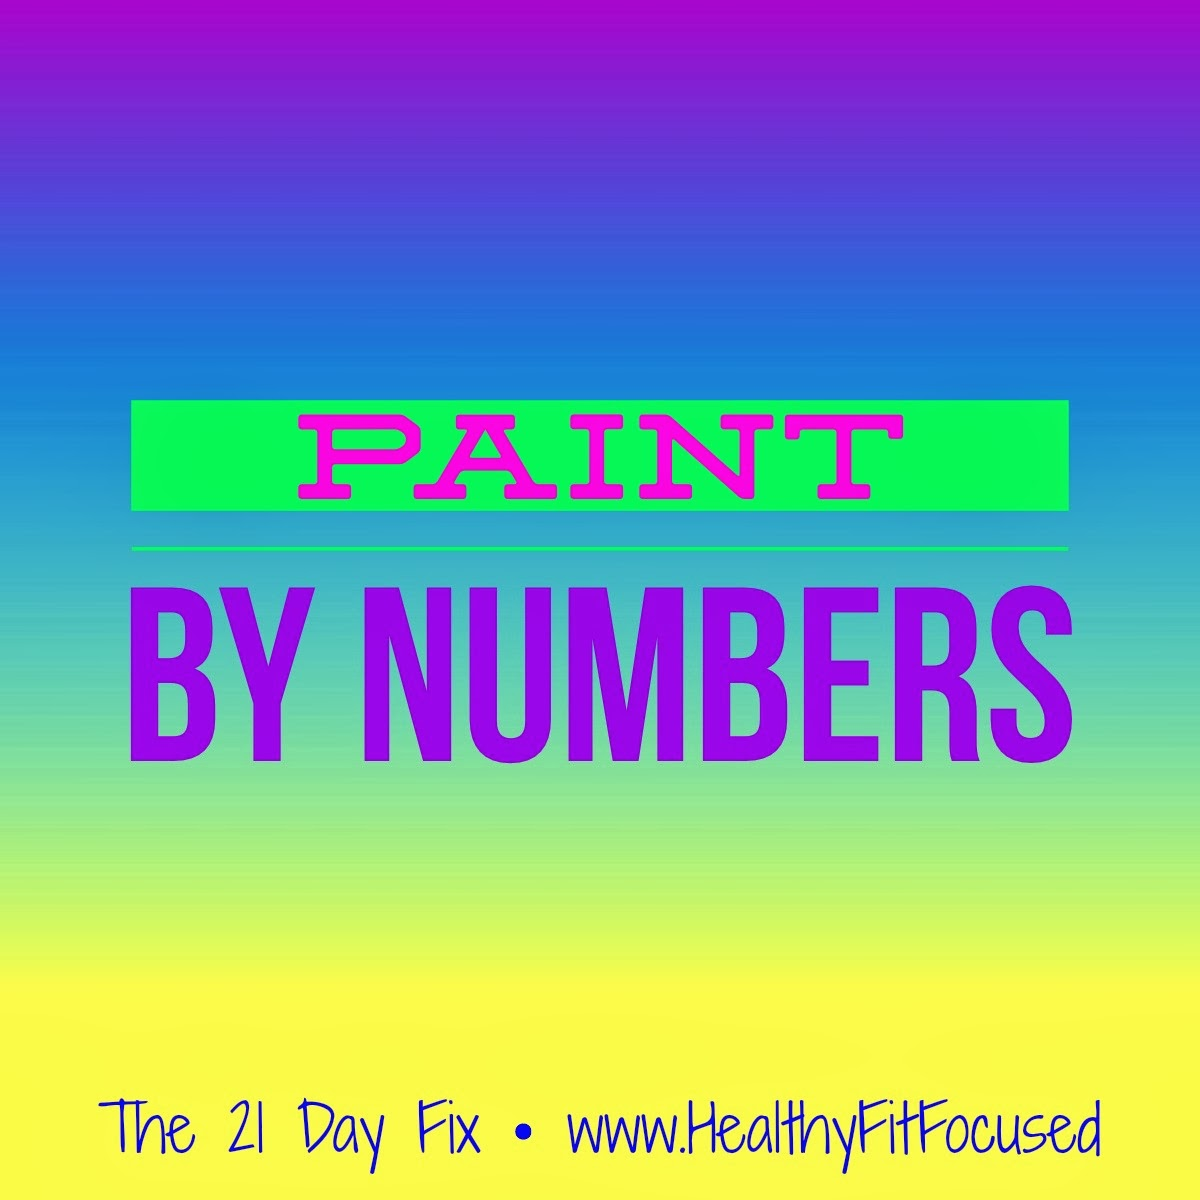 Paint By Numbers approach - The 21 Day Fix - www.HealthyFitFocused.com